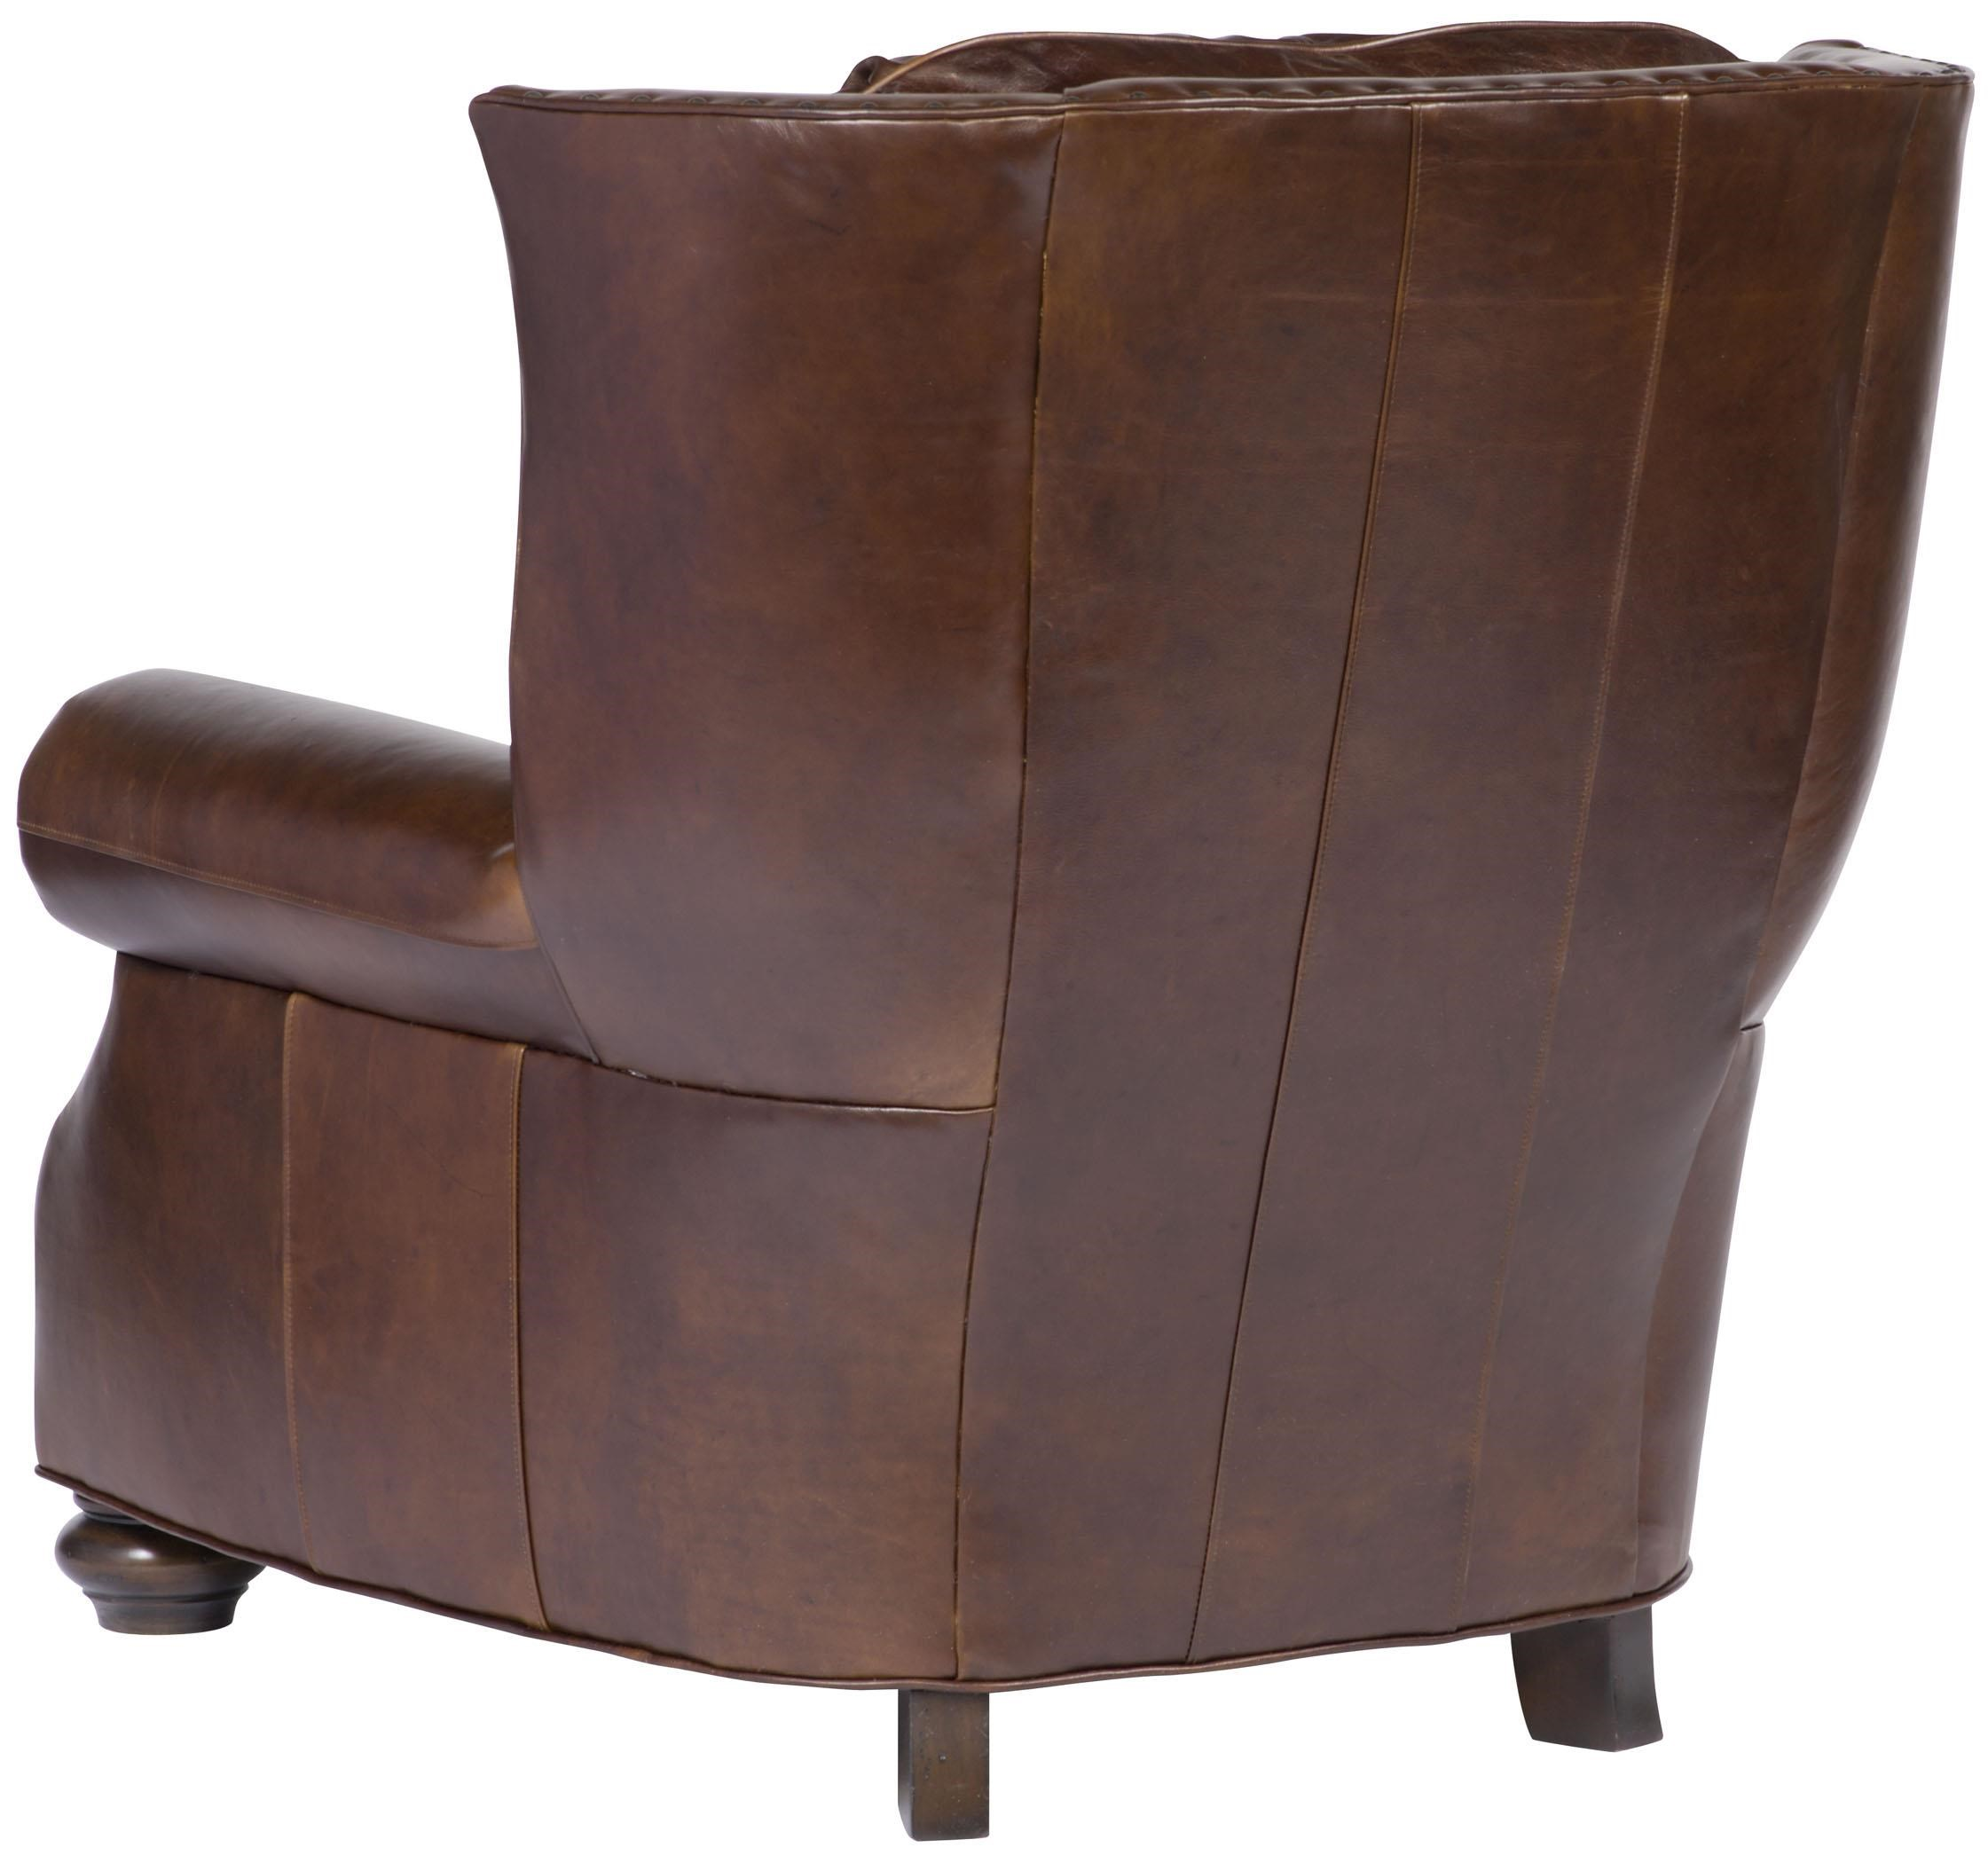 ... Vanguard Furniture Accent ChairsWing Chair